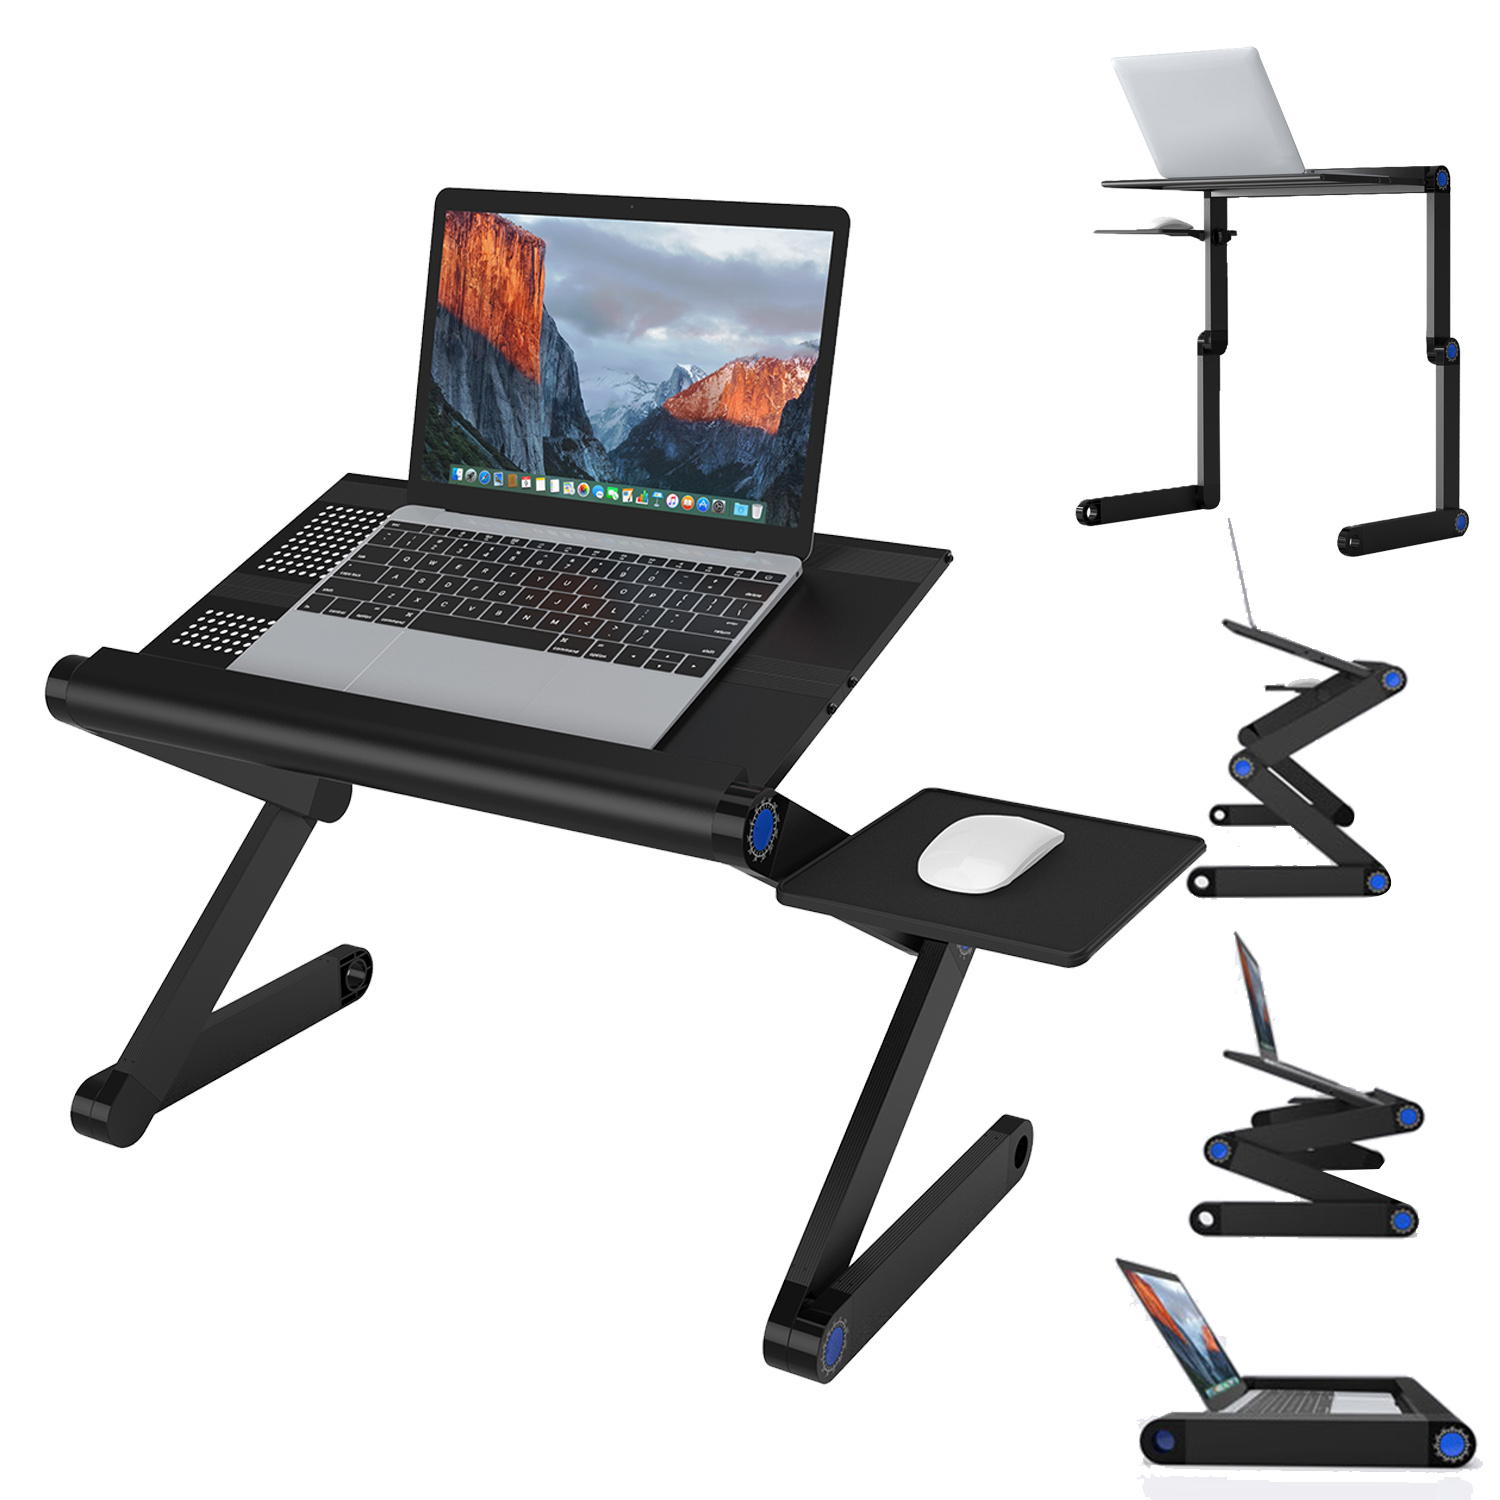 SLYPNOS Adjustable Laptop Stand Folding Portable Standing Desk Ventilated  Aluminum Laptop Riser Tablet Holder Notebook Tray